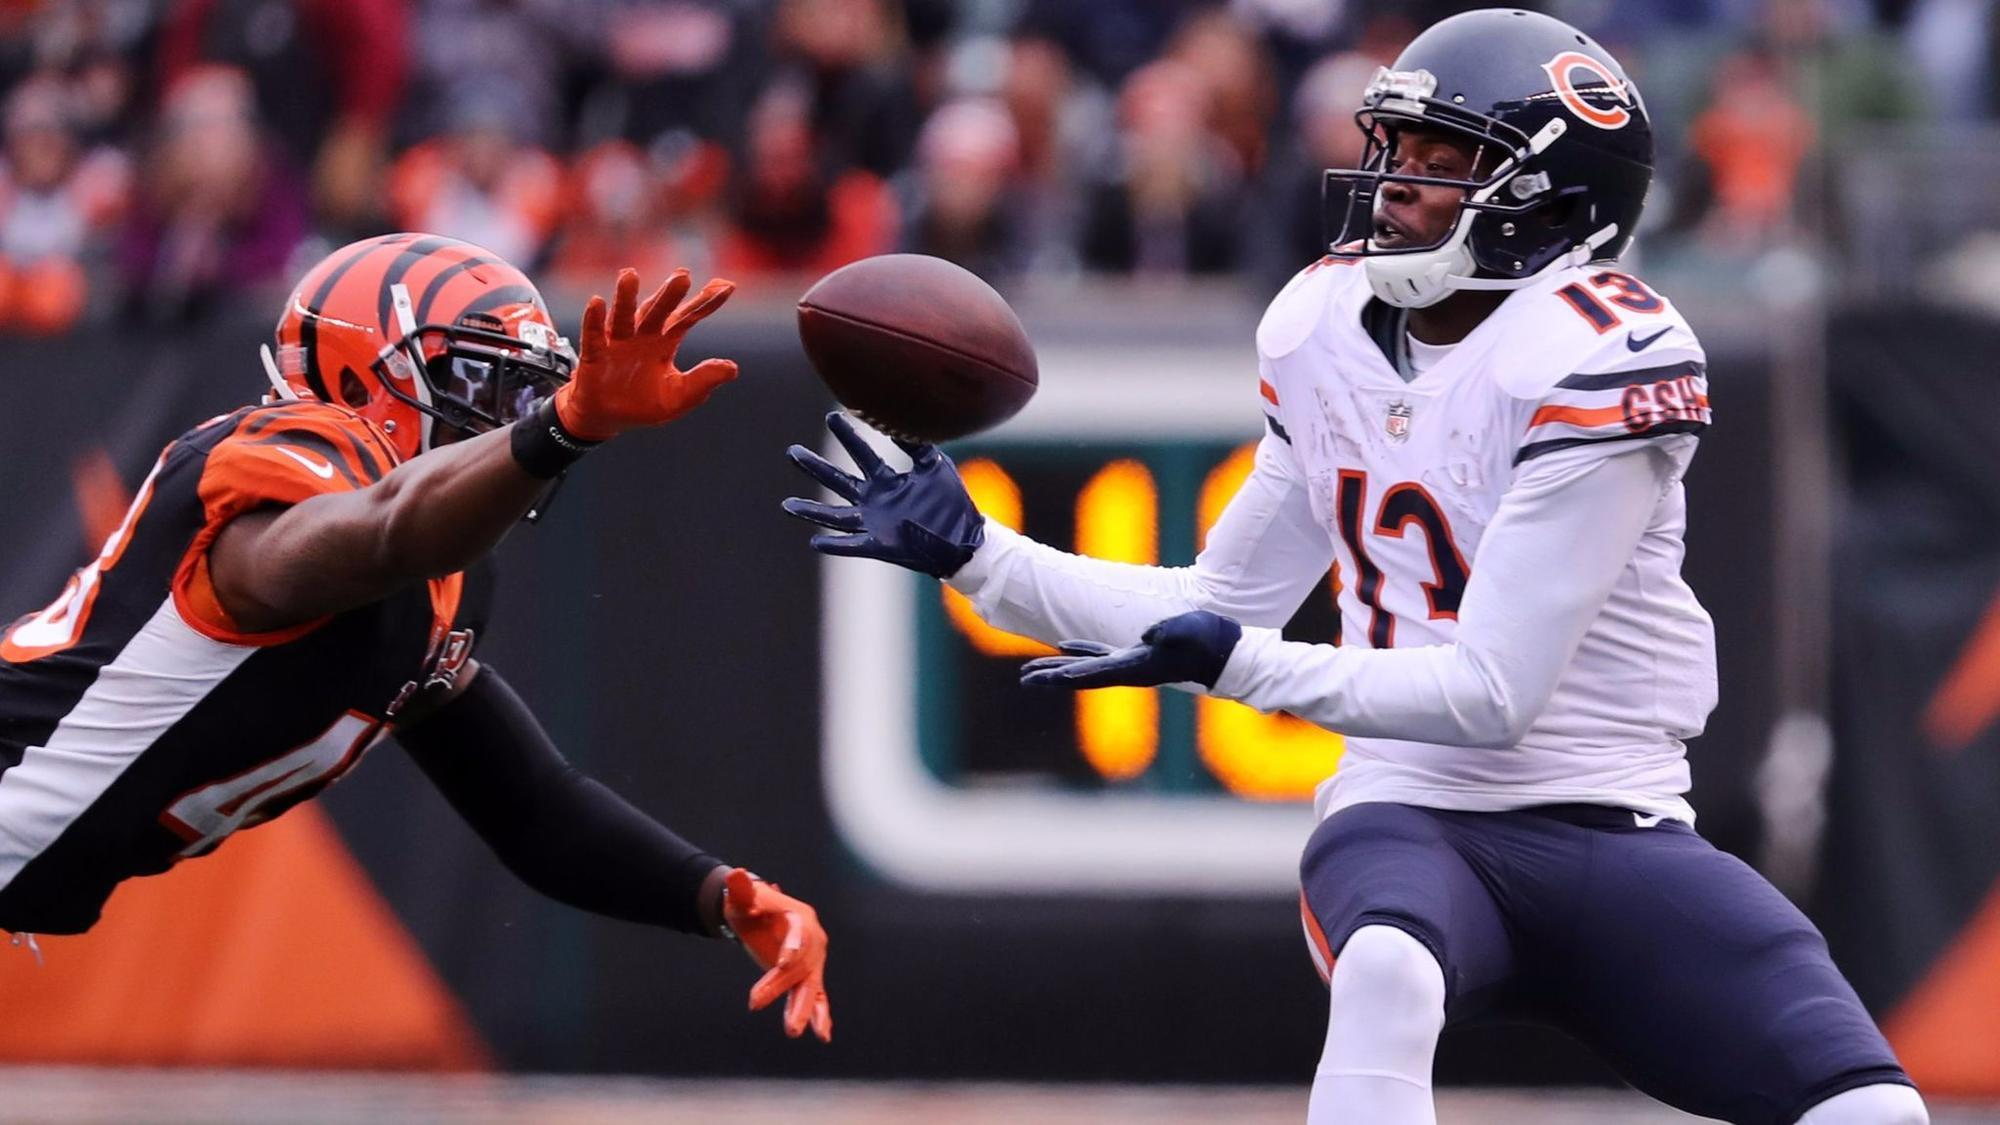 Ct-spt-rosenblog-bears-kendall-wright-receivers-20171214